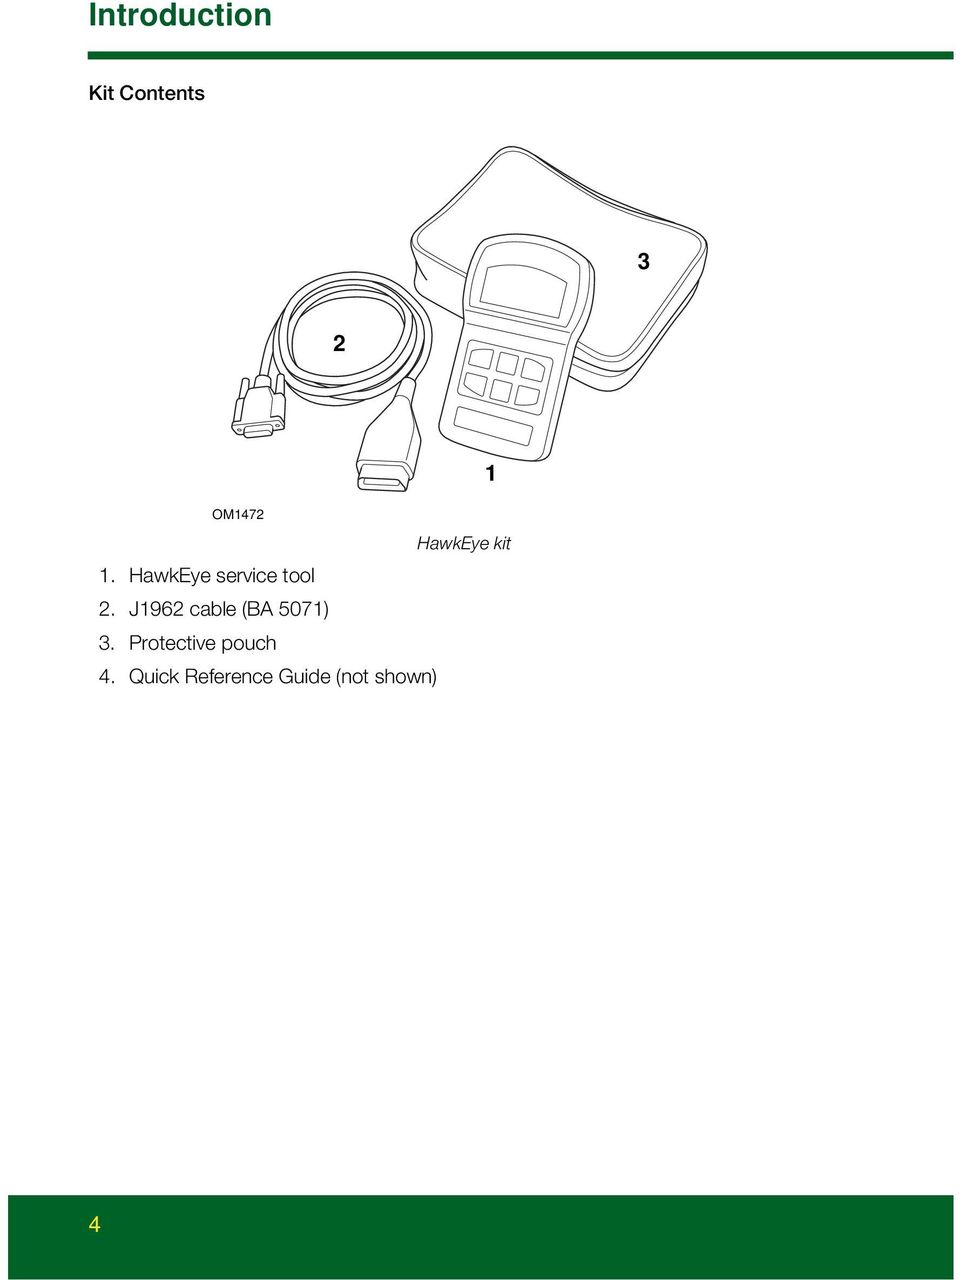 Hawkeye User Manual Your New Diagnostic Tool For Land Rover Current Sensing Relay J1962 Cable Ba 5071 3